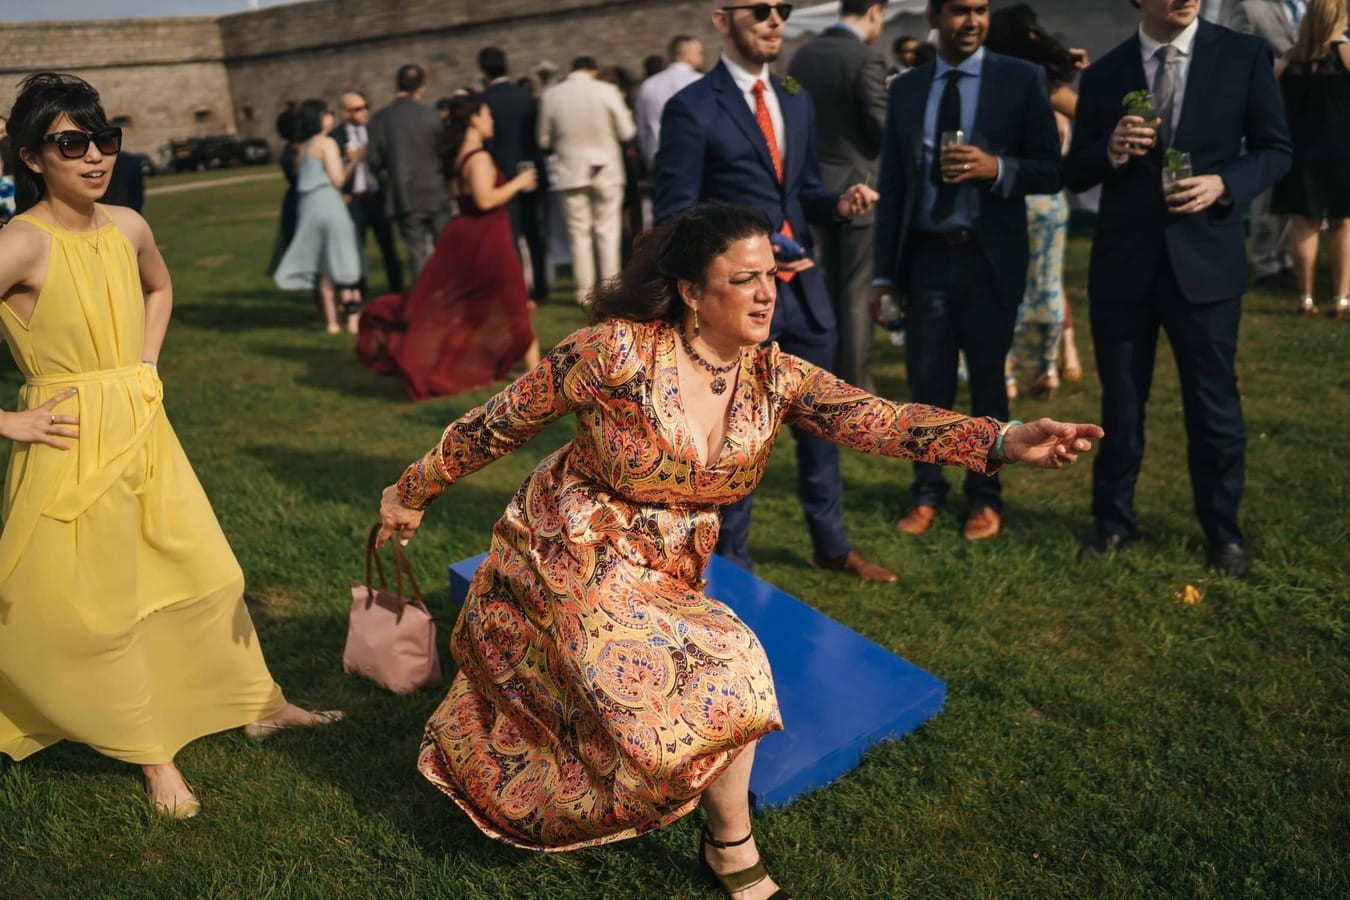 Woman plays hacky-sack during wedding reception in Rhode Island.